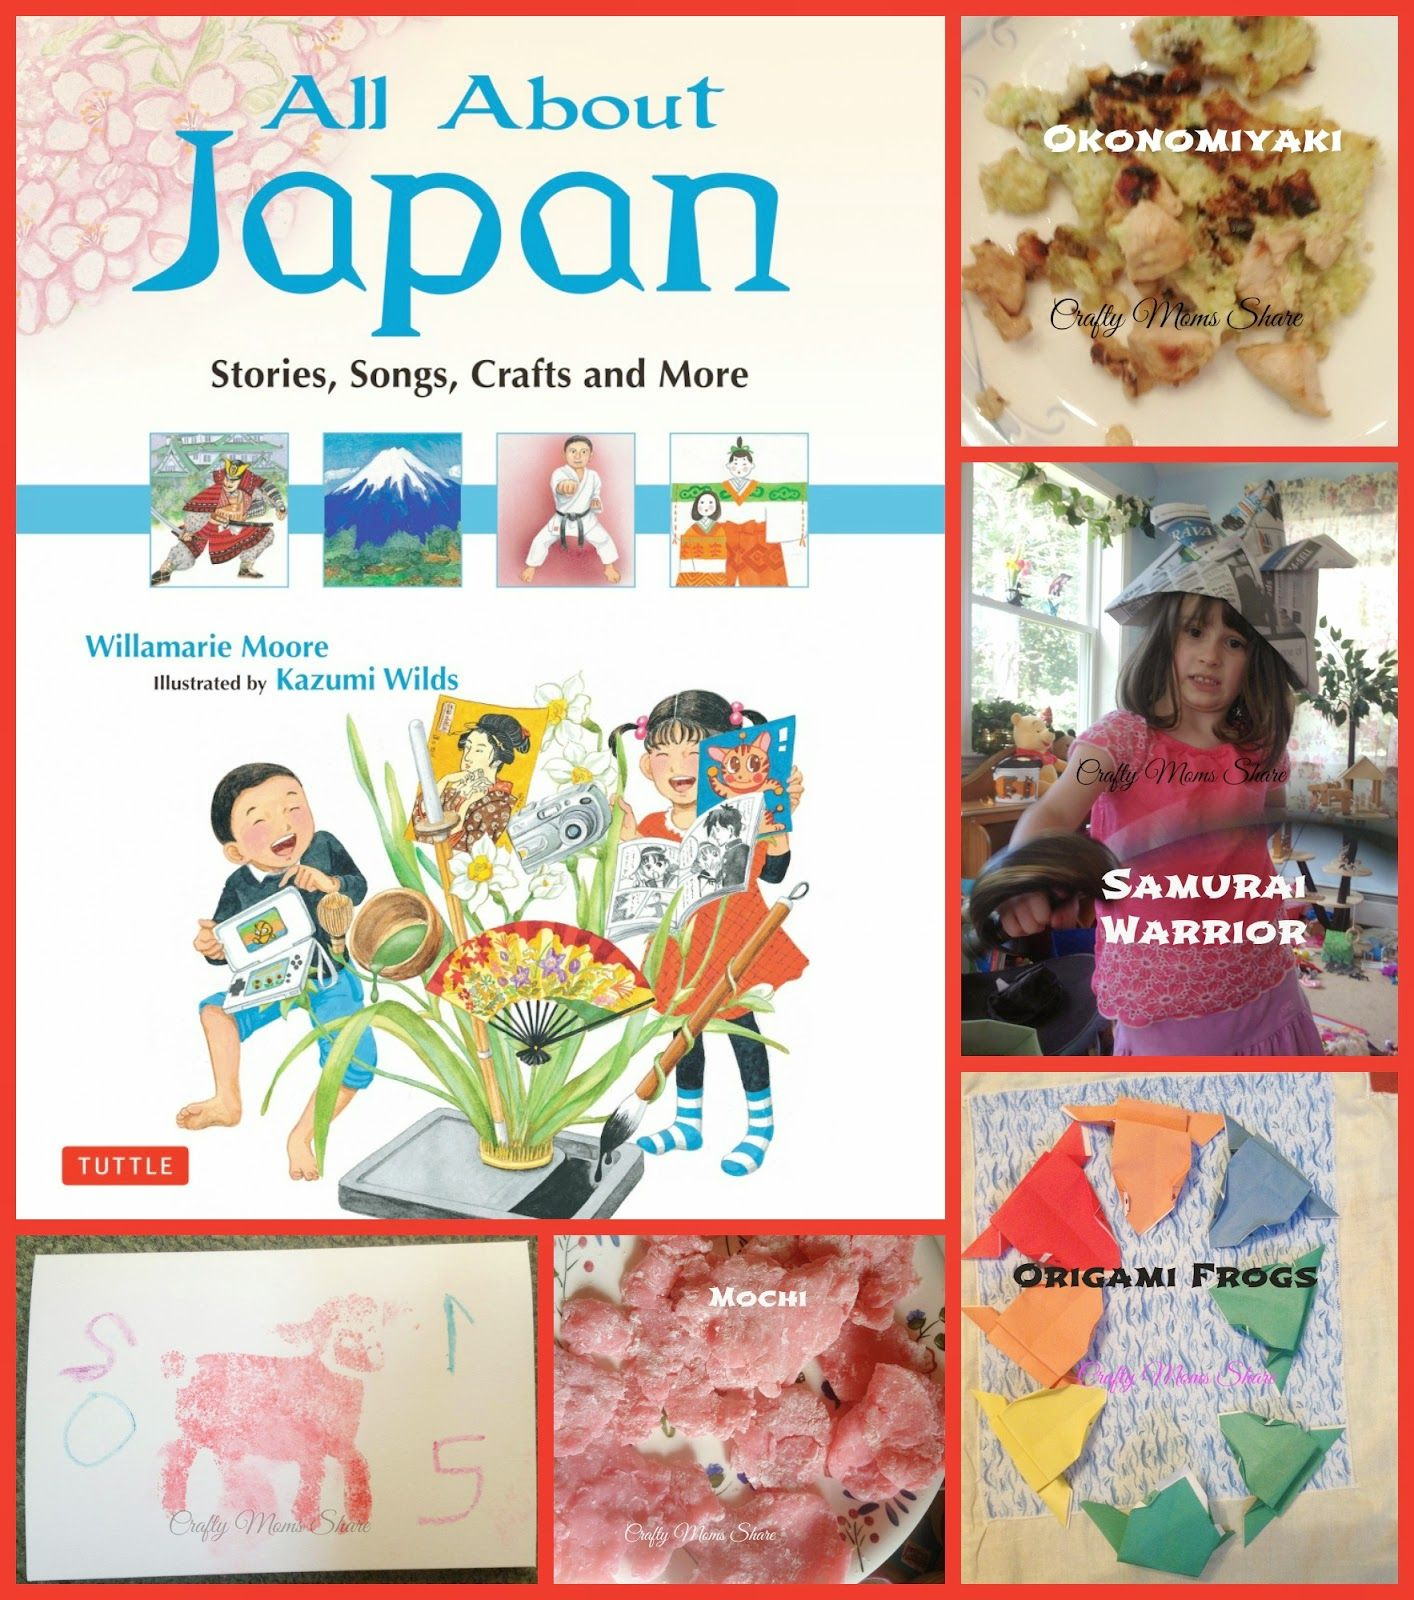 All About Japan By Willamarie Moore Book Review